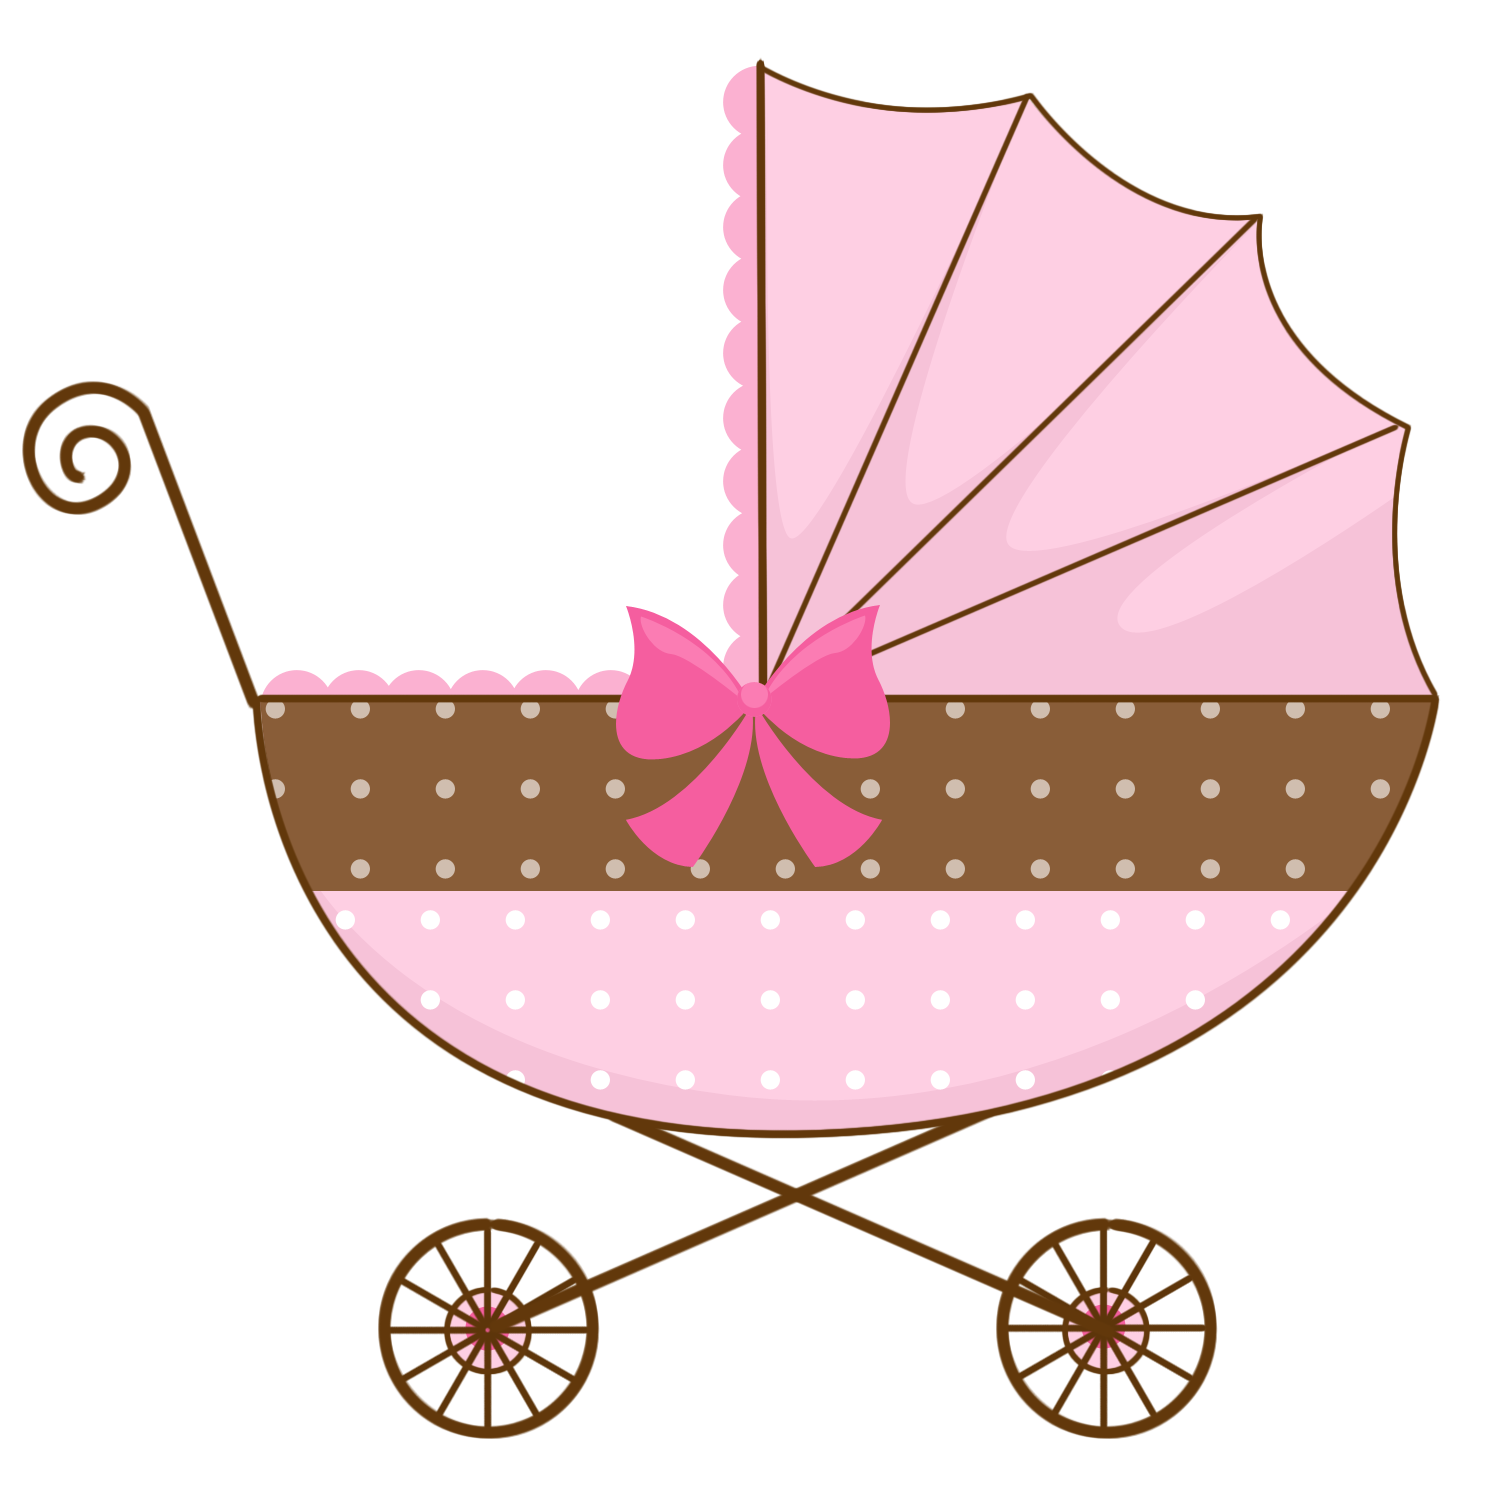 Baby Carriage Clip Art - ClipArt Best